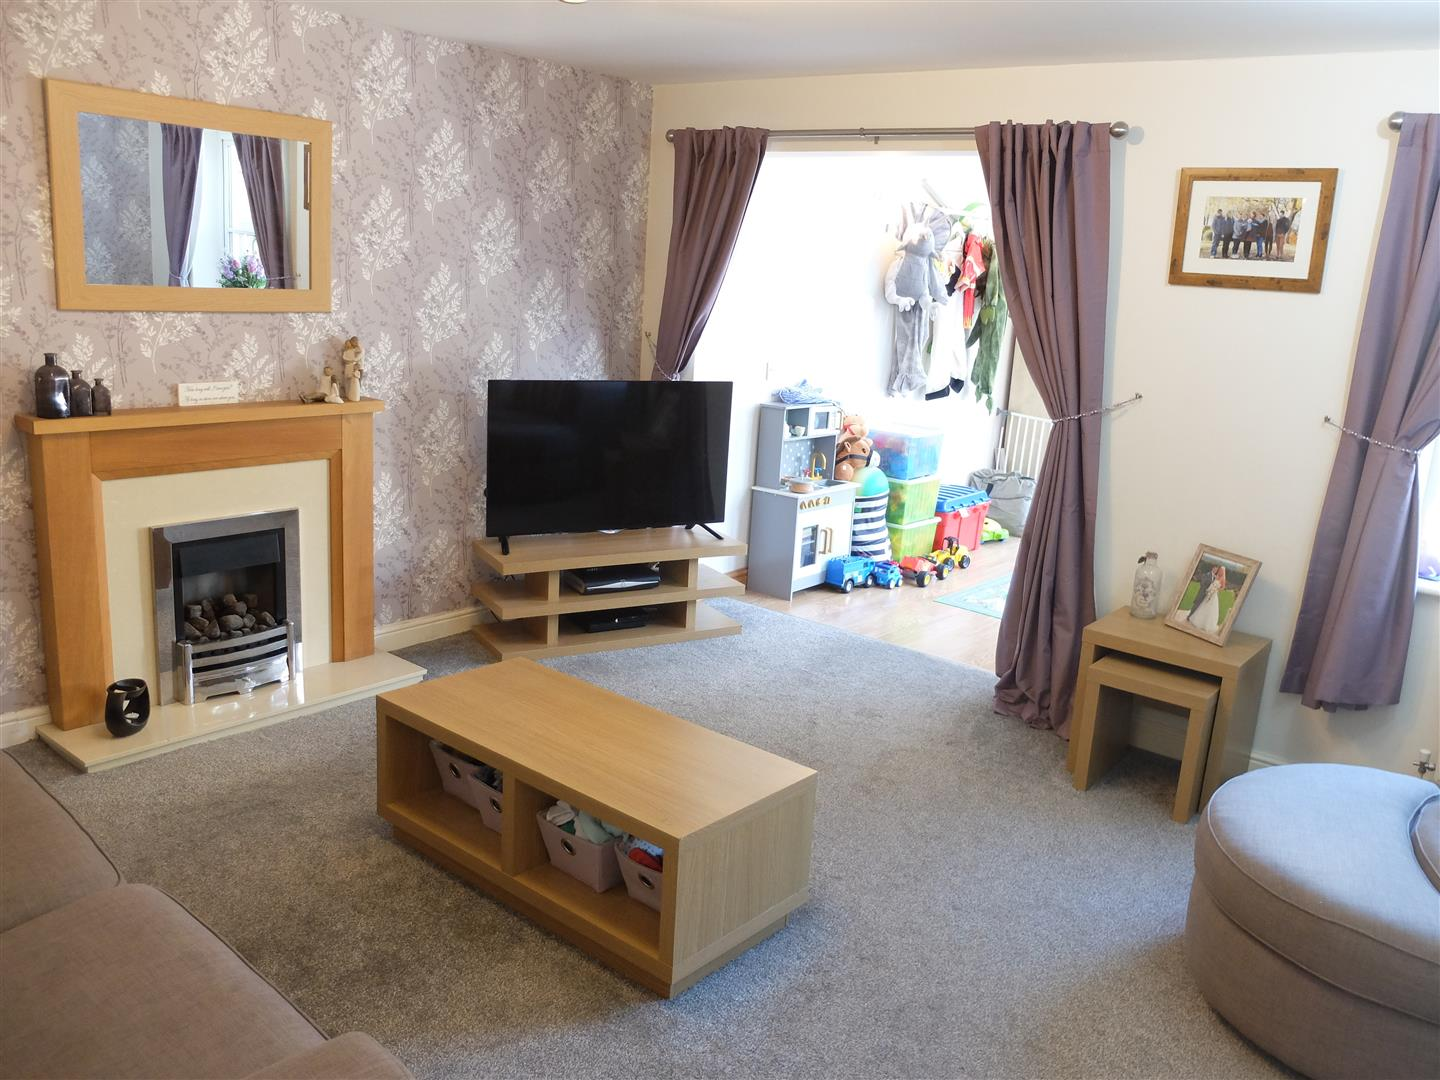 3 Bedrooms House - Semi-Detached For Sale 9 Heathfield Close Carlisle